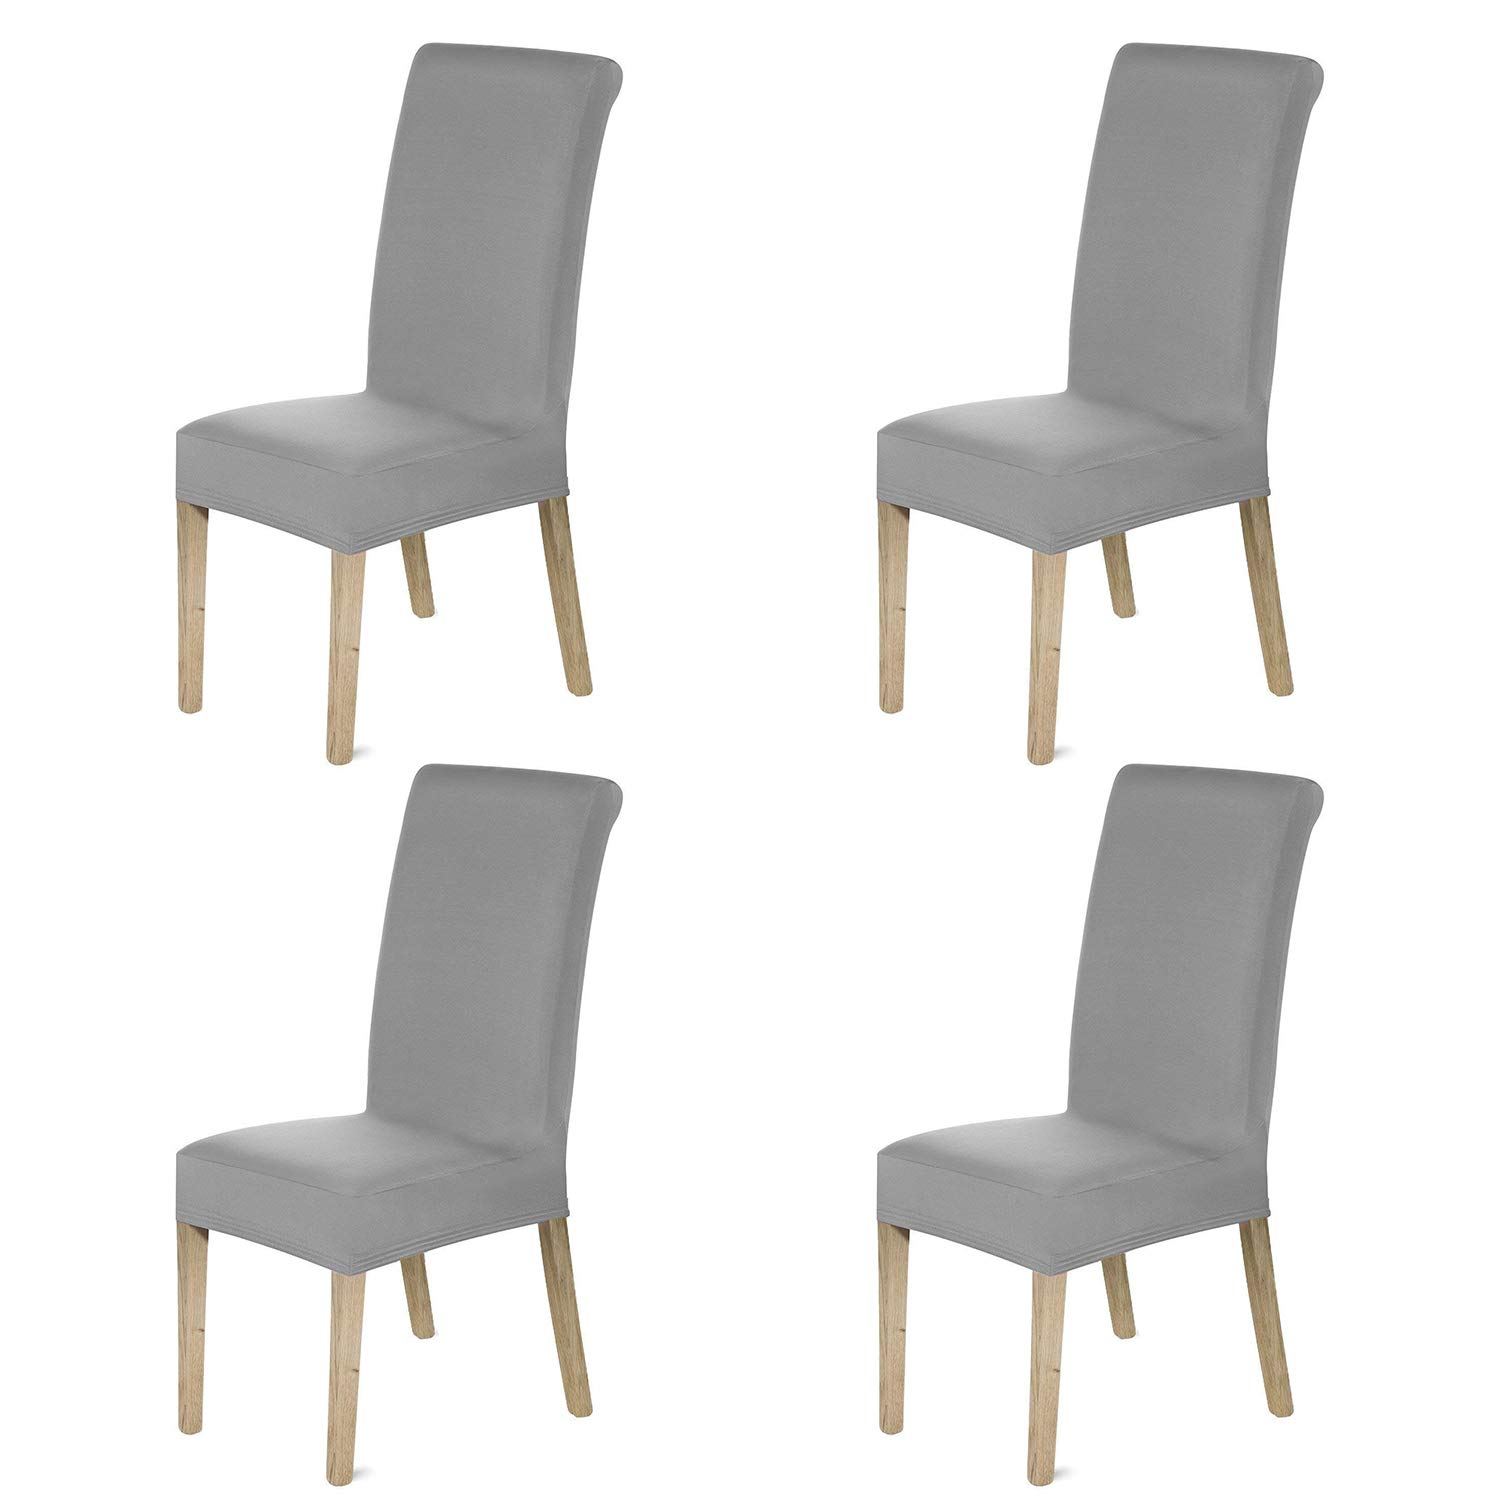 HOMFA Stretch Dining Room Chair Slipcover Washable Polyester Spandex Seat Furniture Protector Covers Hotel Ceremony (Gray ,Set of 4)